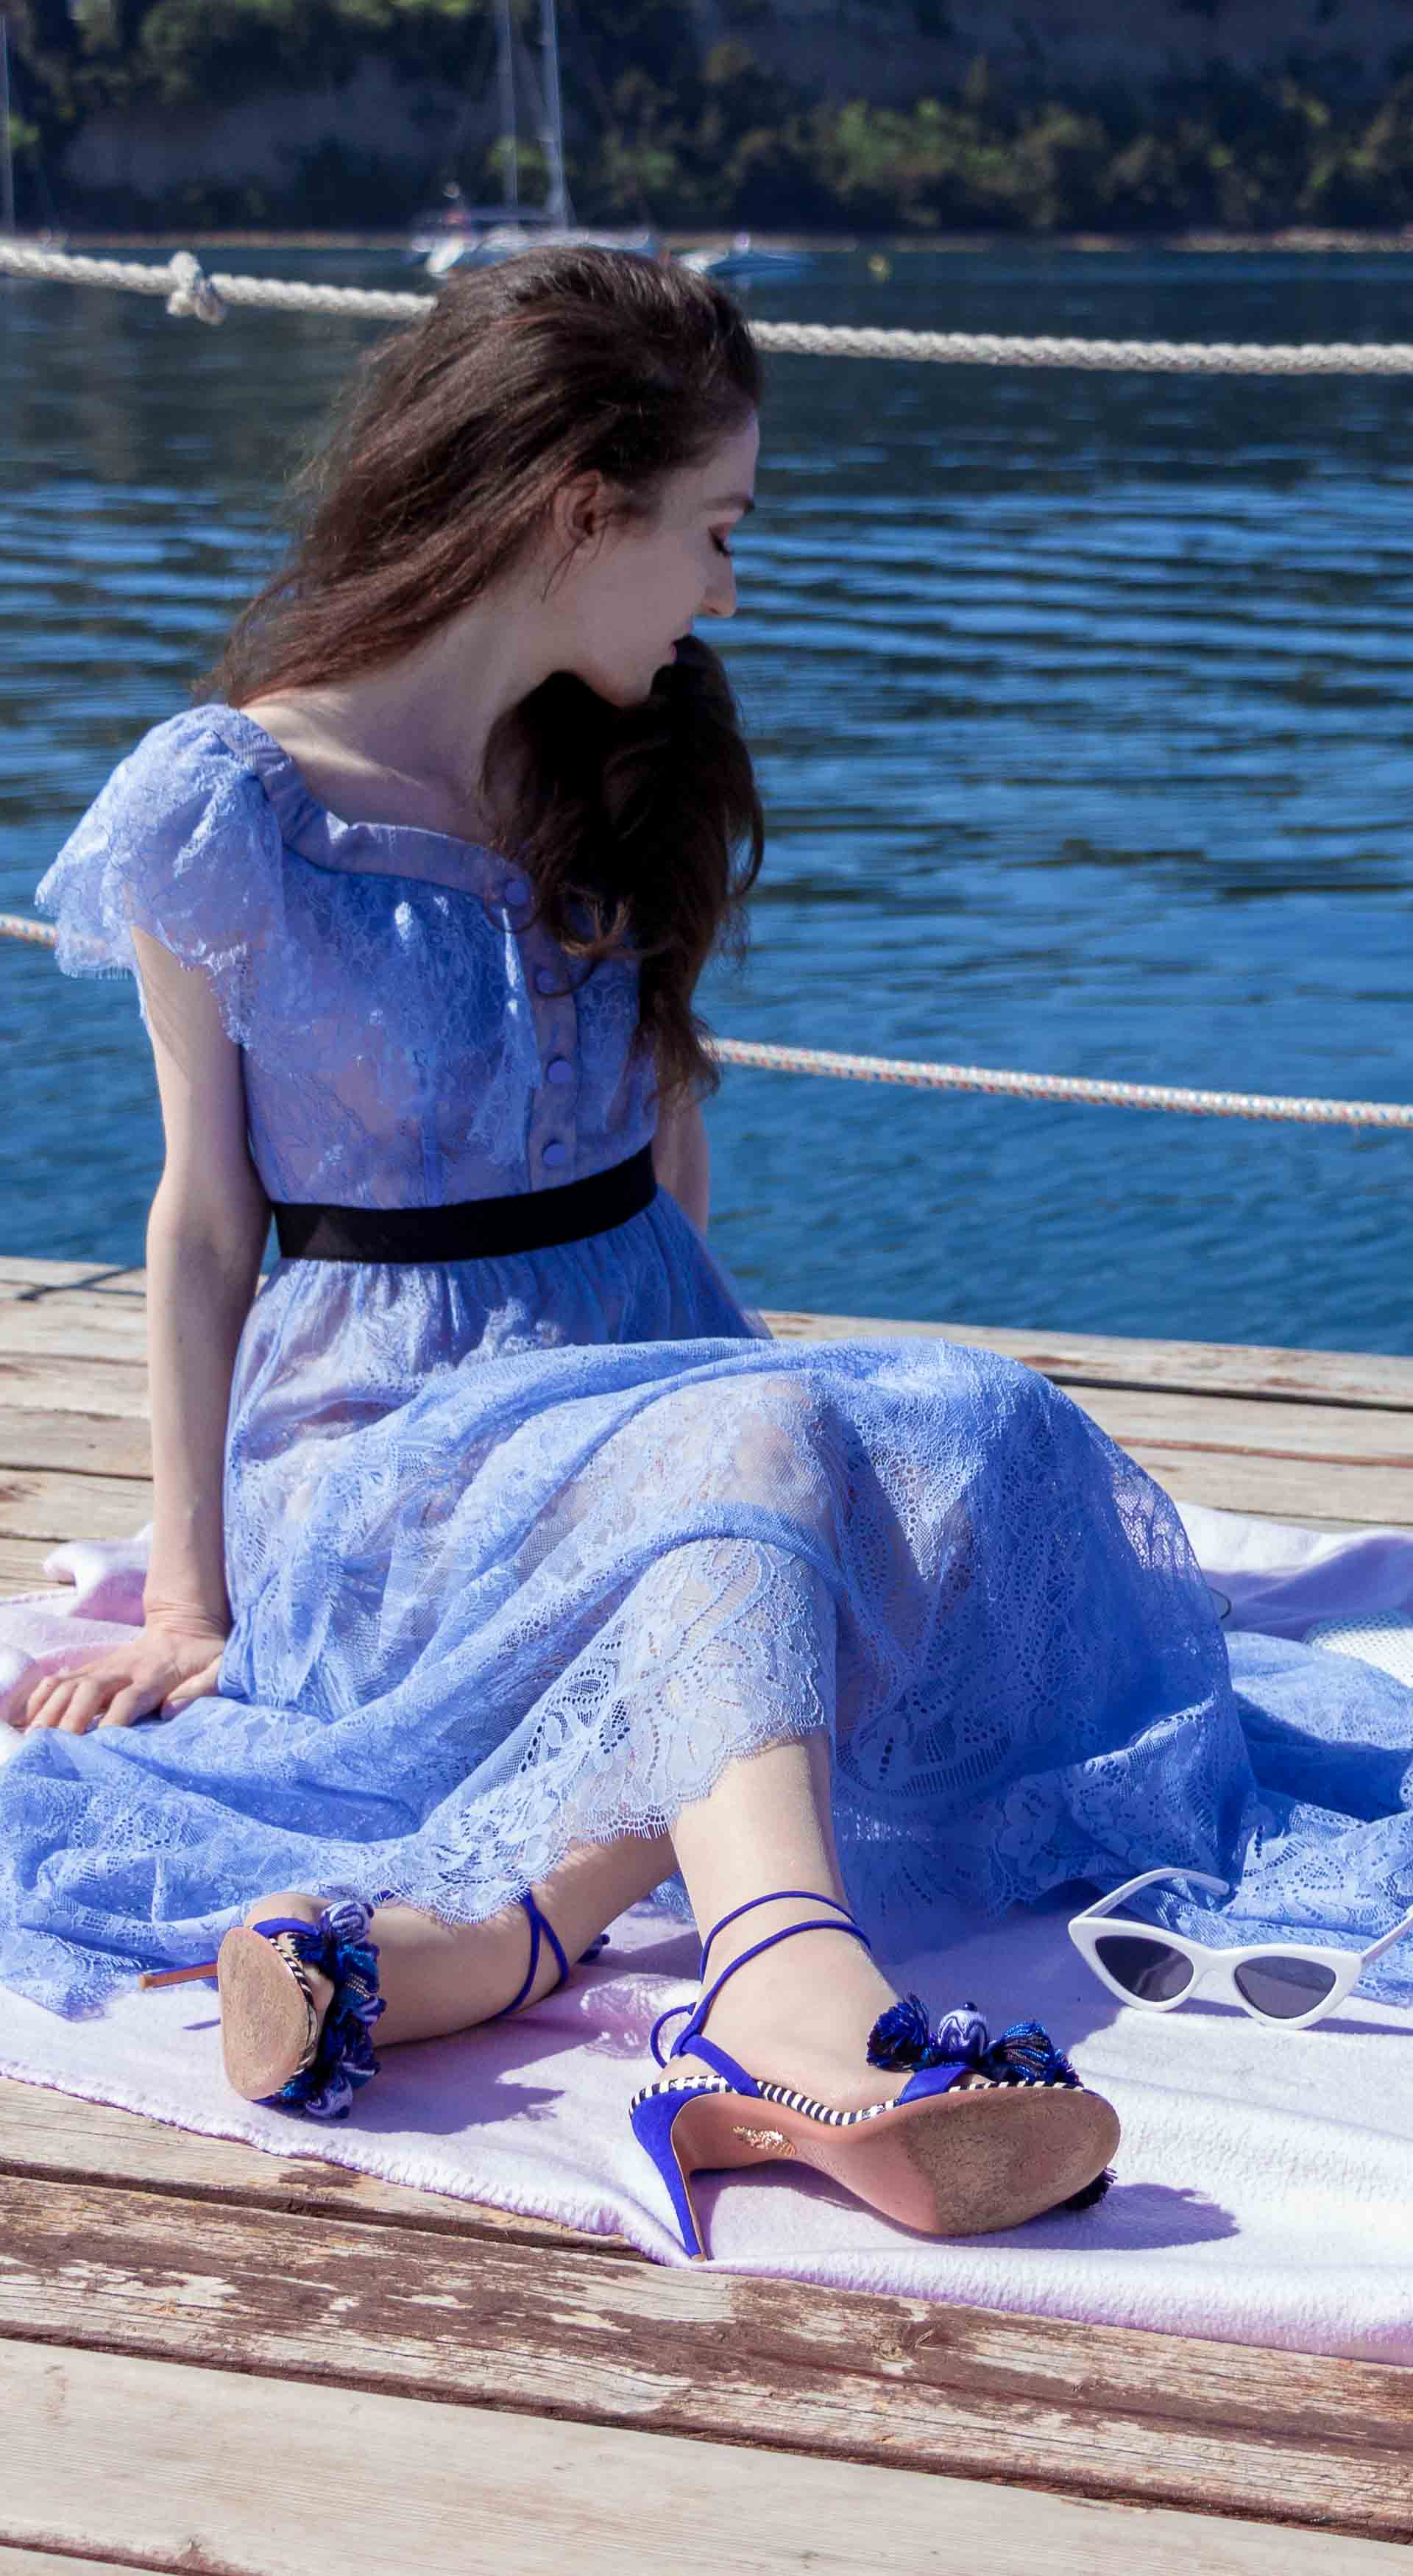 Veronika Lipar Fashion Blogger of Brunette from Wall Street wearing blue off the shoulder midi lace dress from Self-Portrait, H&M blue denim jacket, white chain shoulder bag, Aquazzura blue pom pom tassels sandals, white Lolita cat-eye sunglasses for romantic summer date picnic